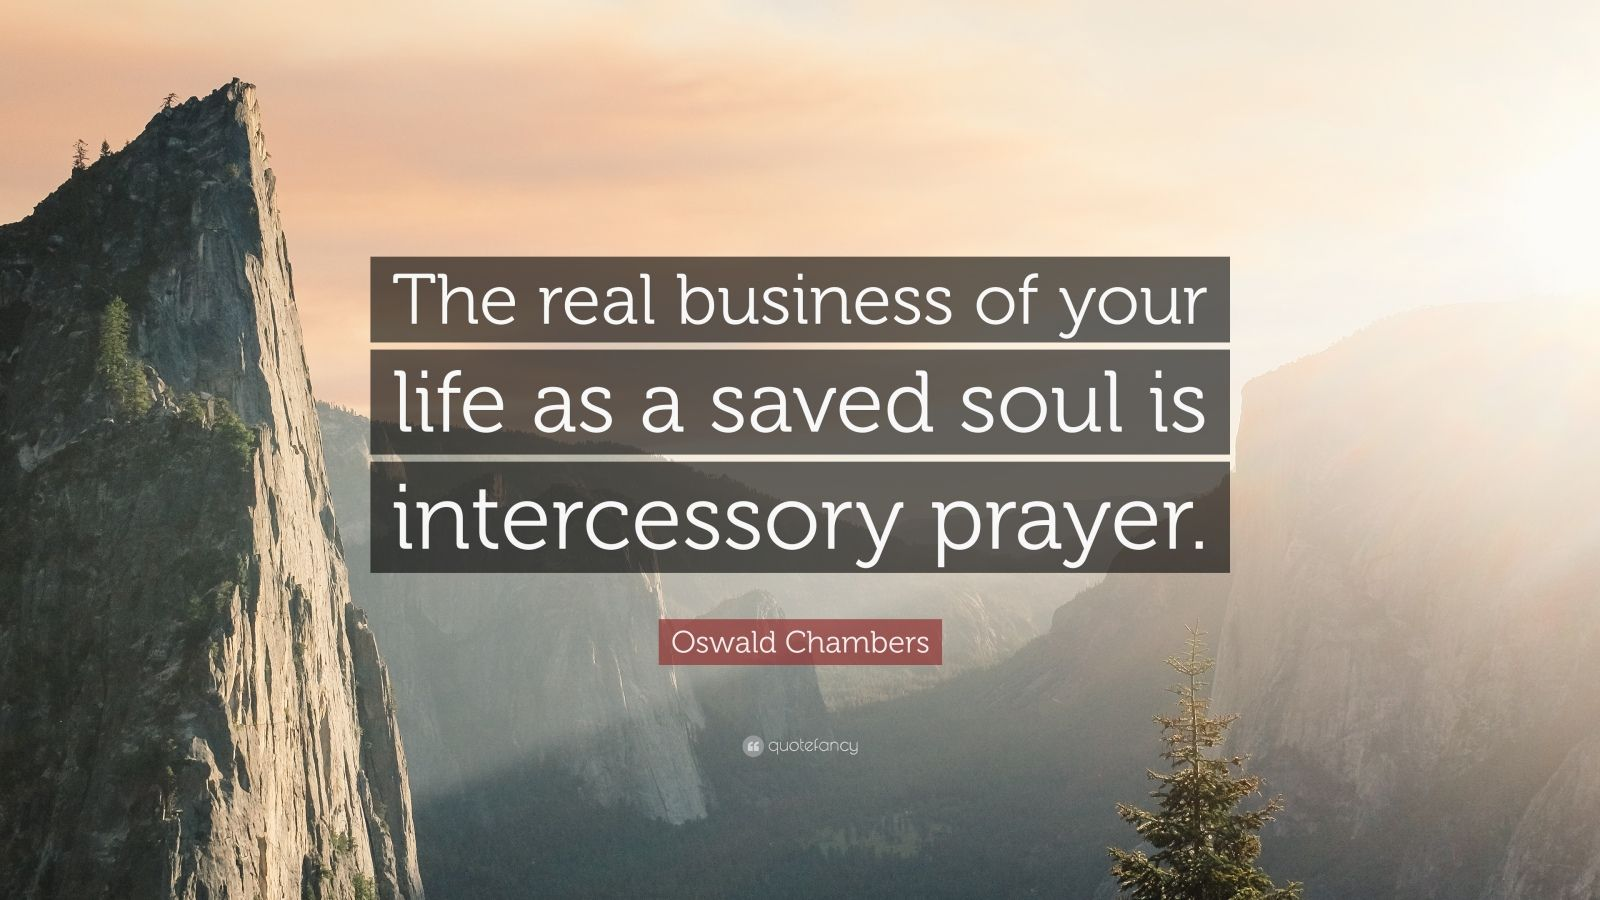 """Oswald Chambers Quote: """"The real business of your life as a saved soul is intercessory prayer."""""""